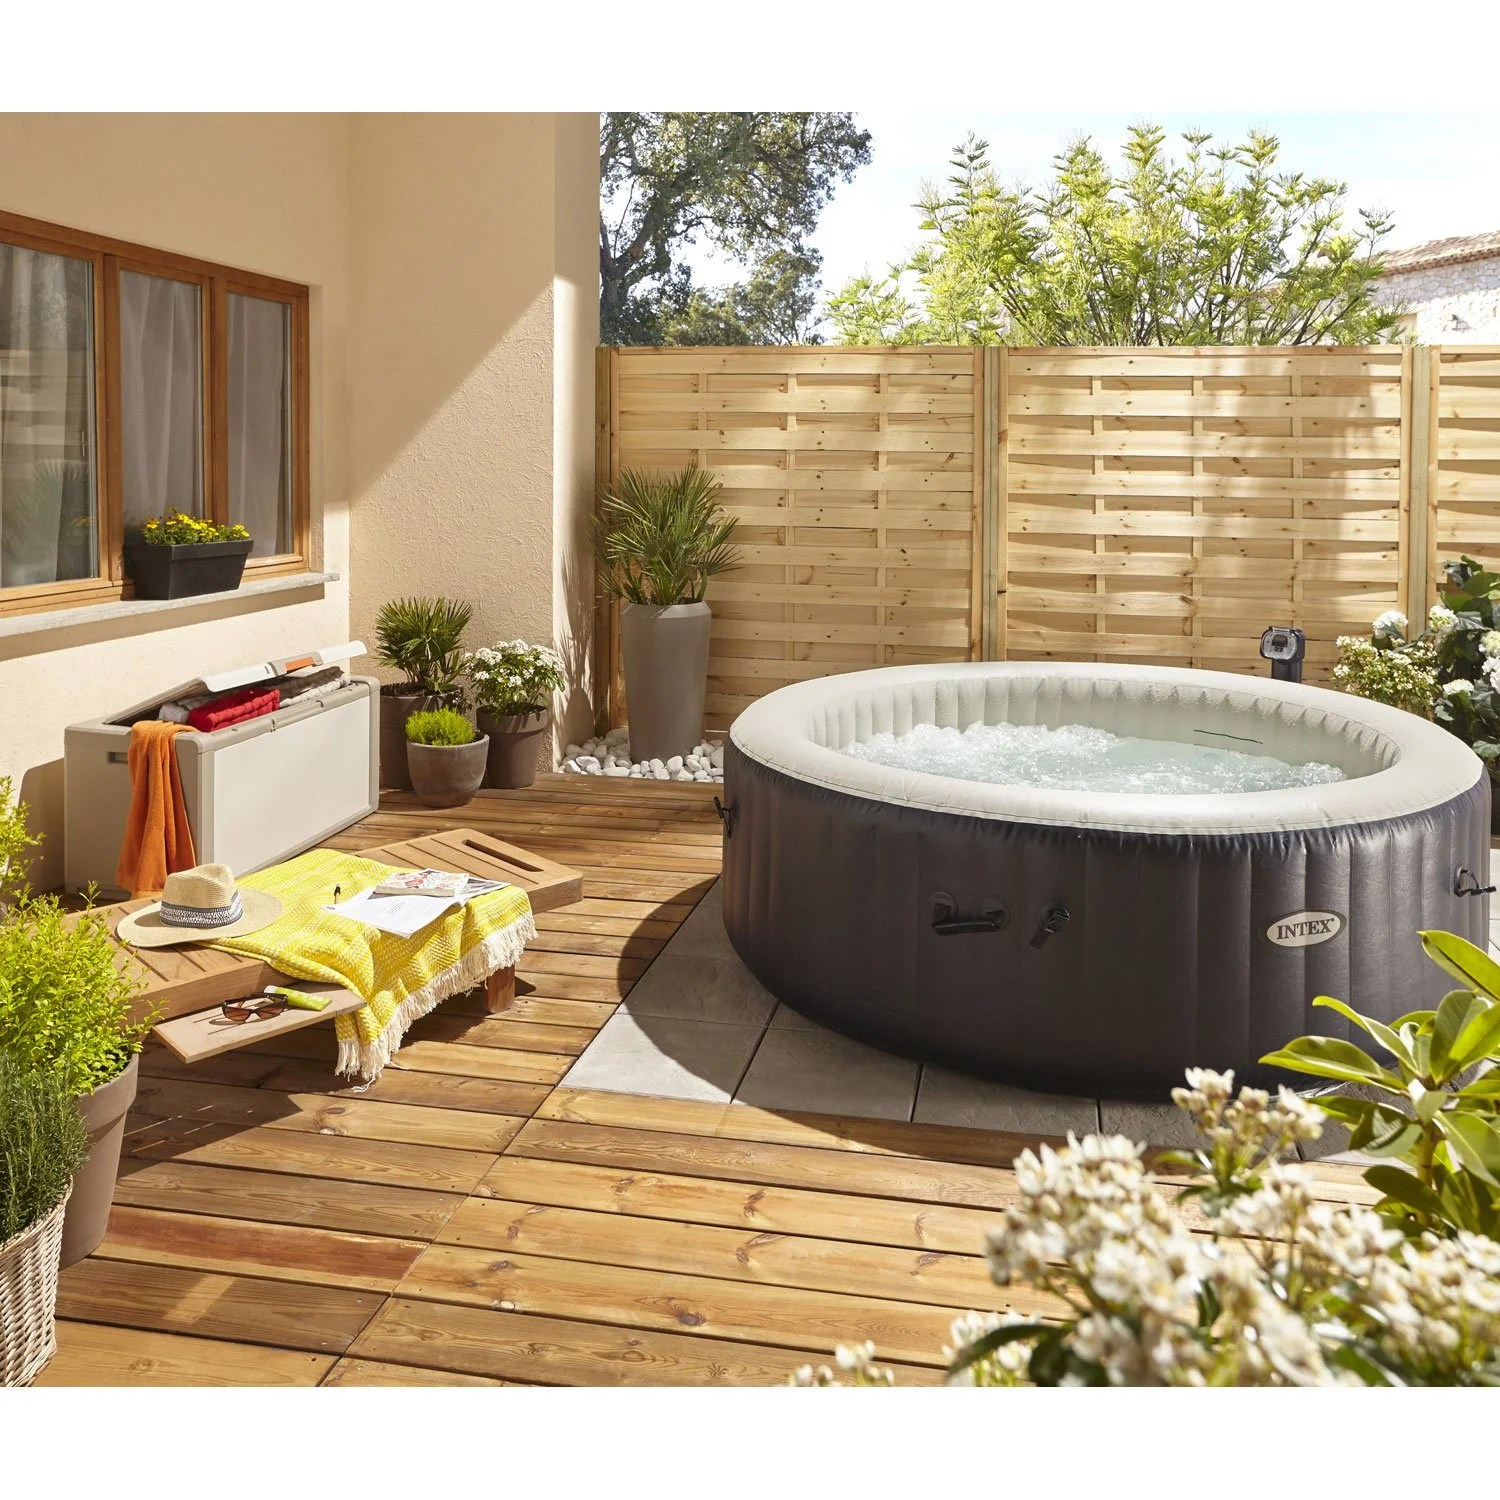 Jacuzzi Gonflable Sur Terrasse Spa Gonflable Intex Purespa Bulles Blue Navy Rond 6